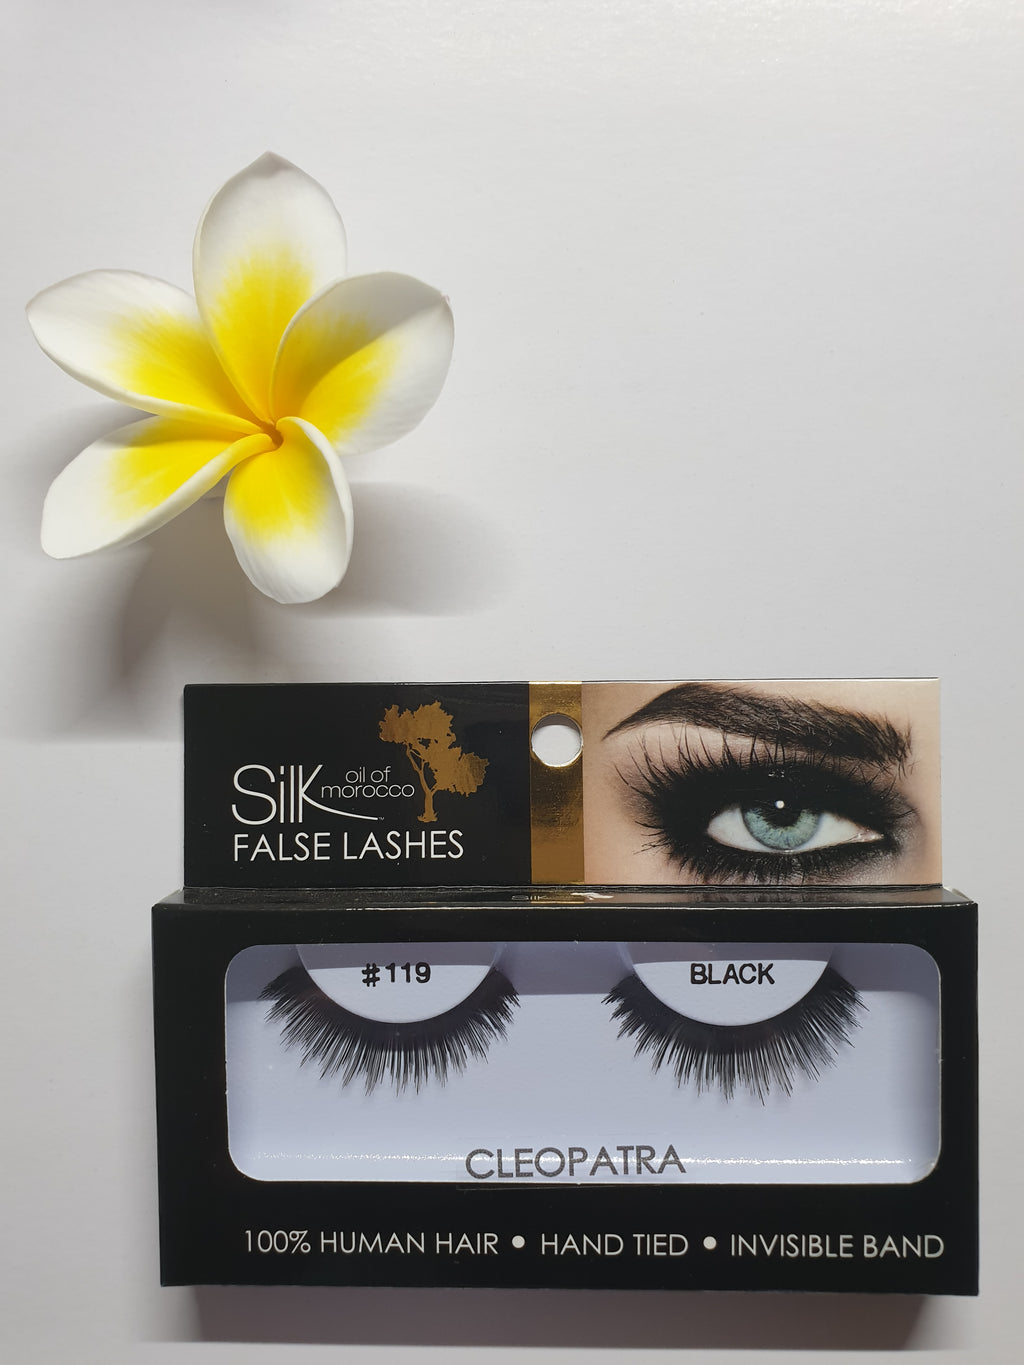 Silk Oil of Morocco Vegan Strip False Lash Cleopatra